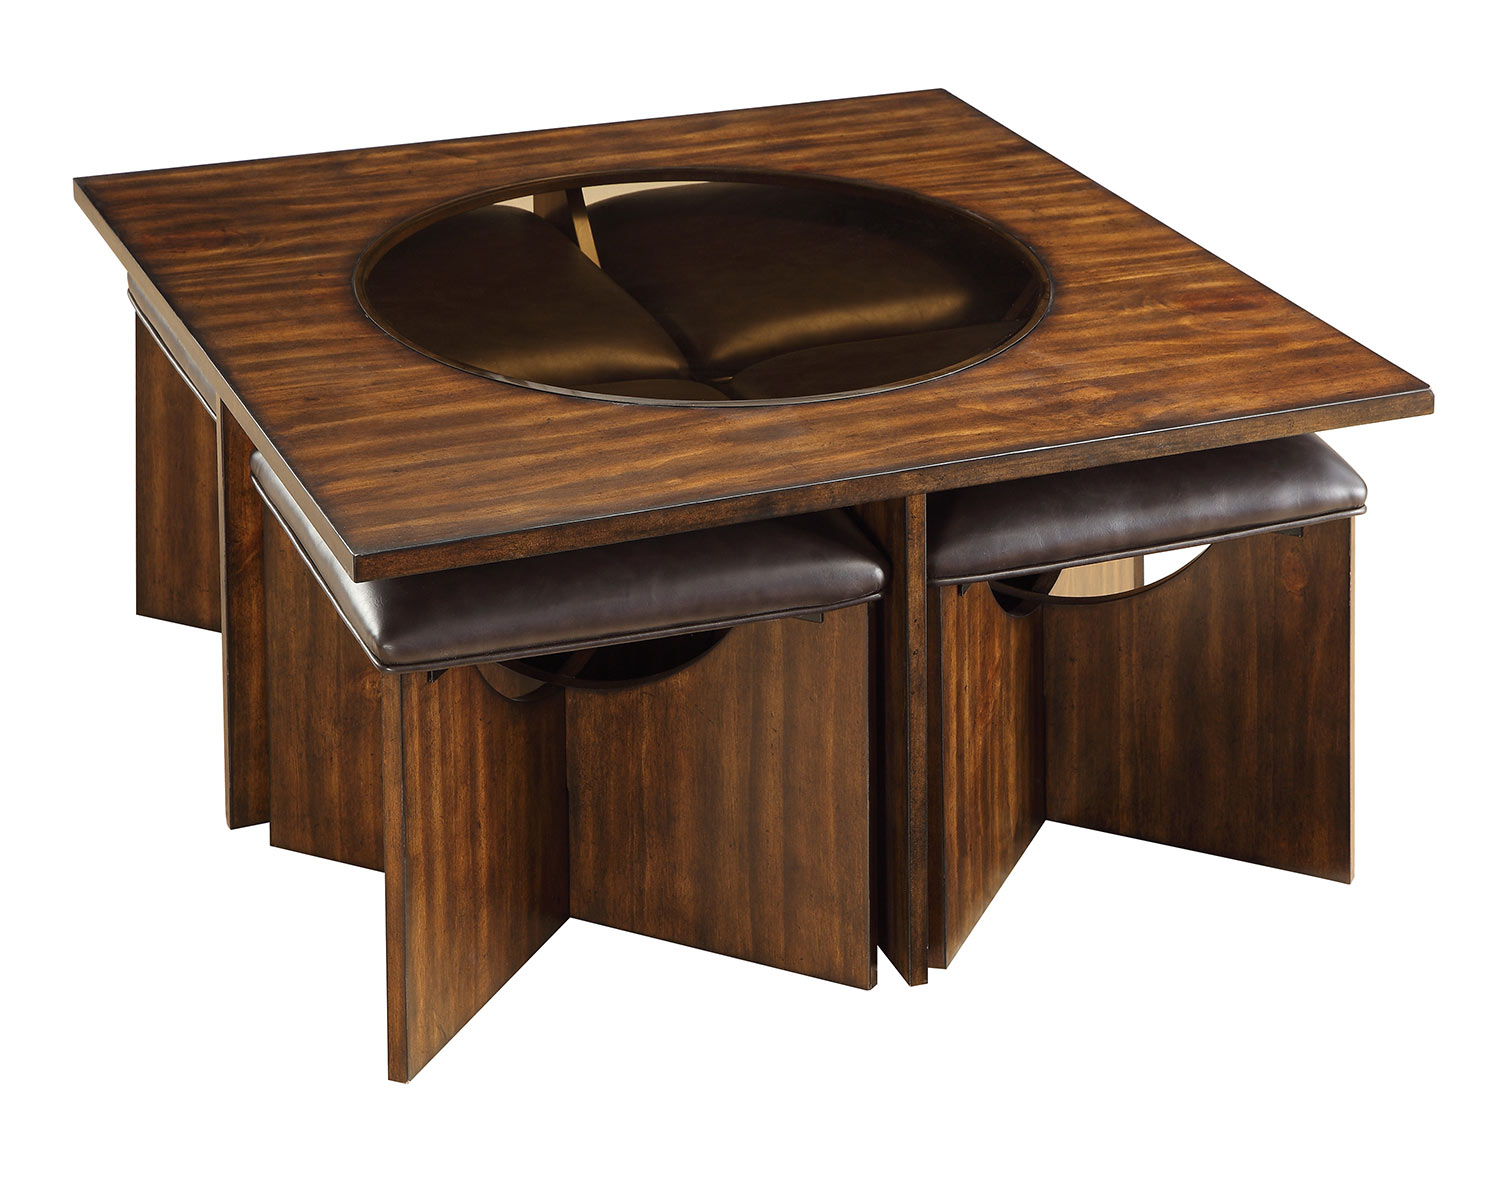 Homelegance Akita Cocktail/Coffee Table with Four Stools - Cherry